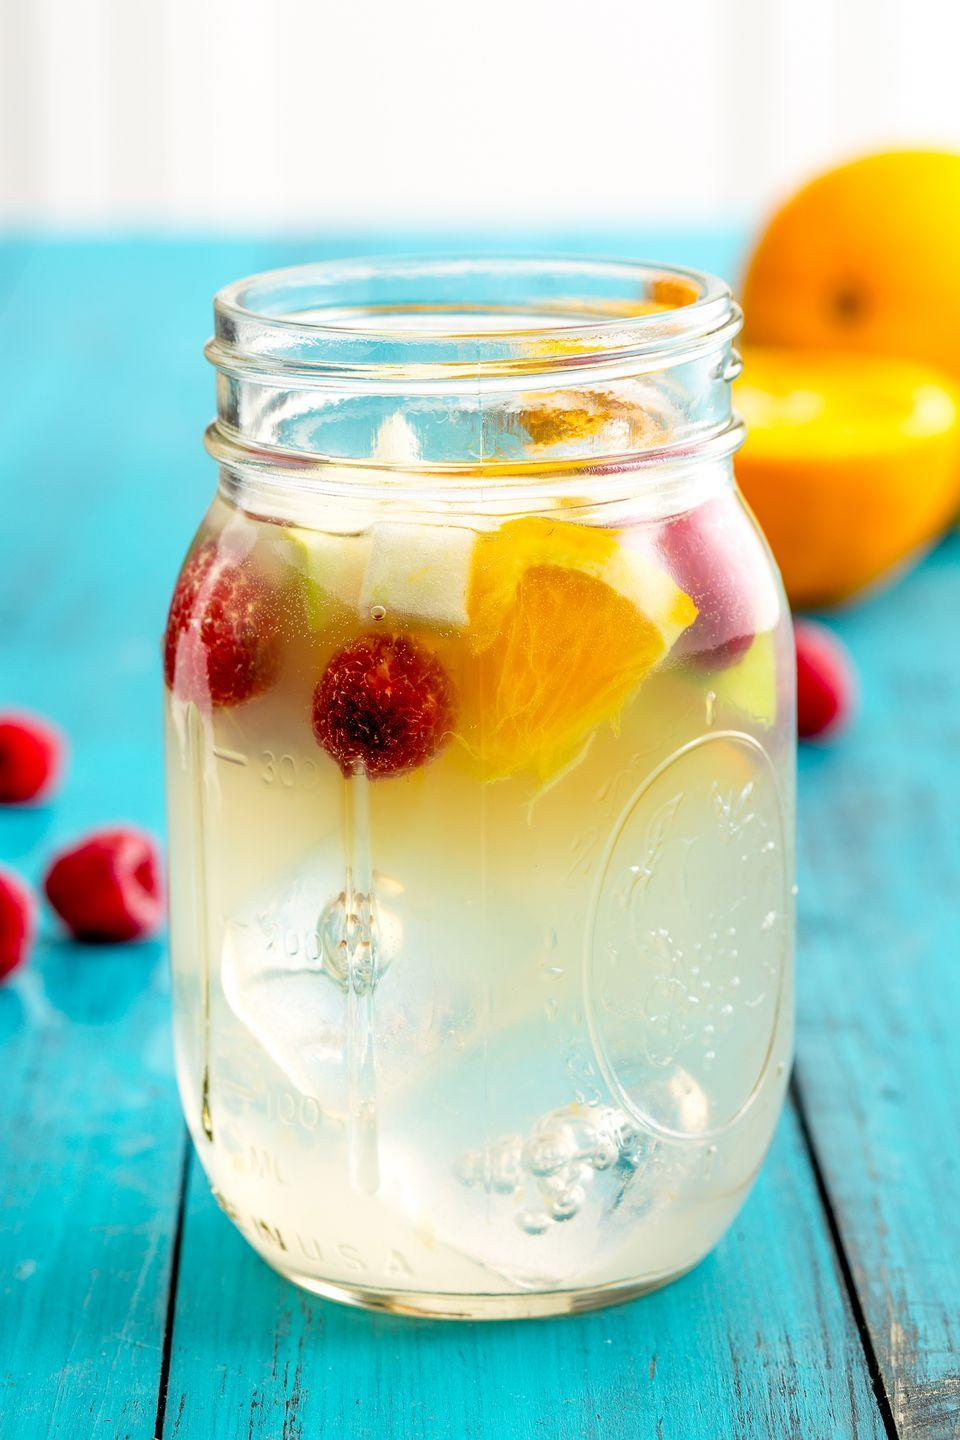 """<p>It's your two favorite summertime drinks in one glass.</p><p>Get the recipe from <a href=""""https://www.delish.com/cooking/recipes/a47848/sangria-lemonade-recipe/"""" rel=""""nofollow noopener"""" target=""""_blank"""" data-ylk=""""slk:Delish"""" class=""""link rapid-noclick-resp"""">Delish</a>.</p>"""